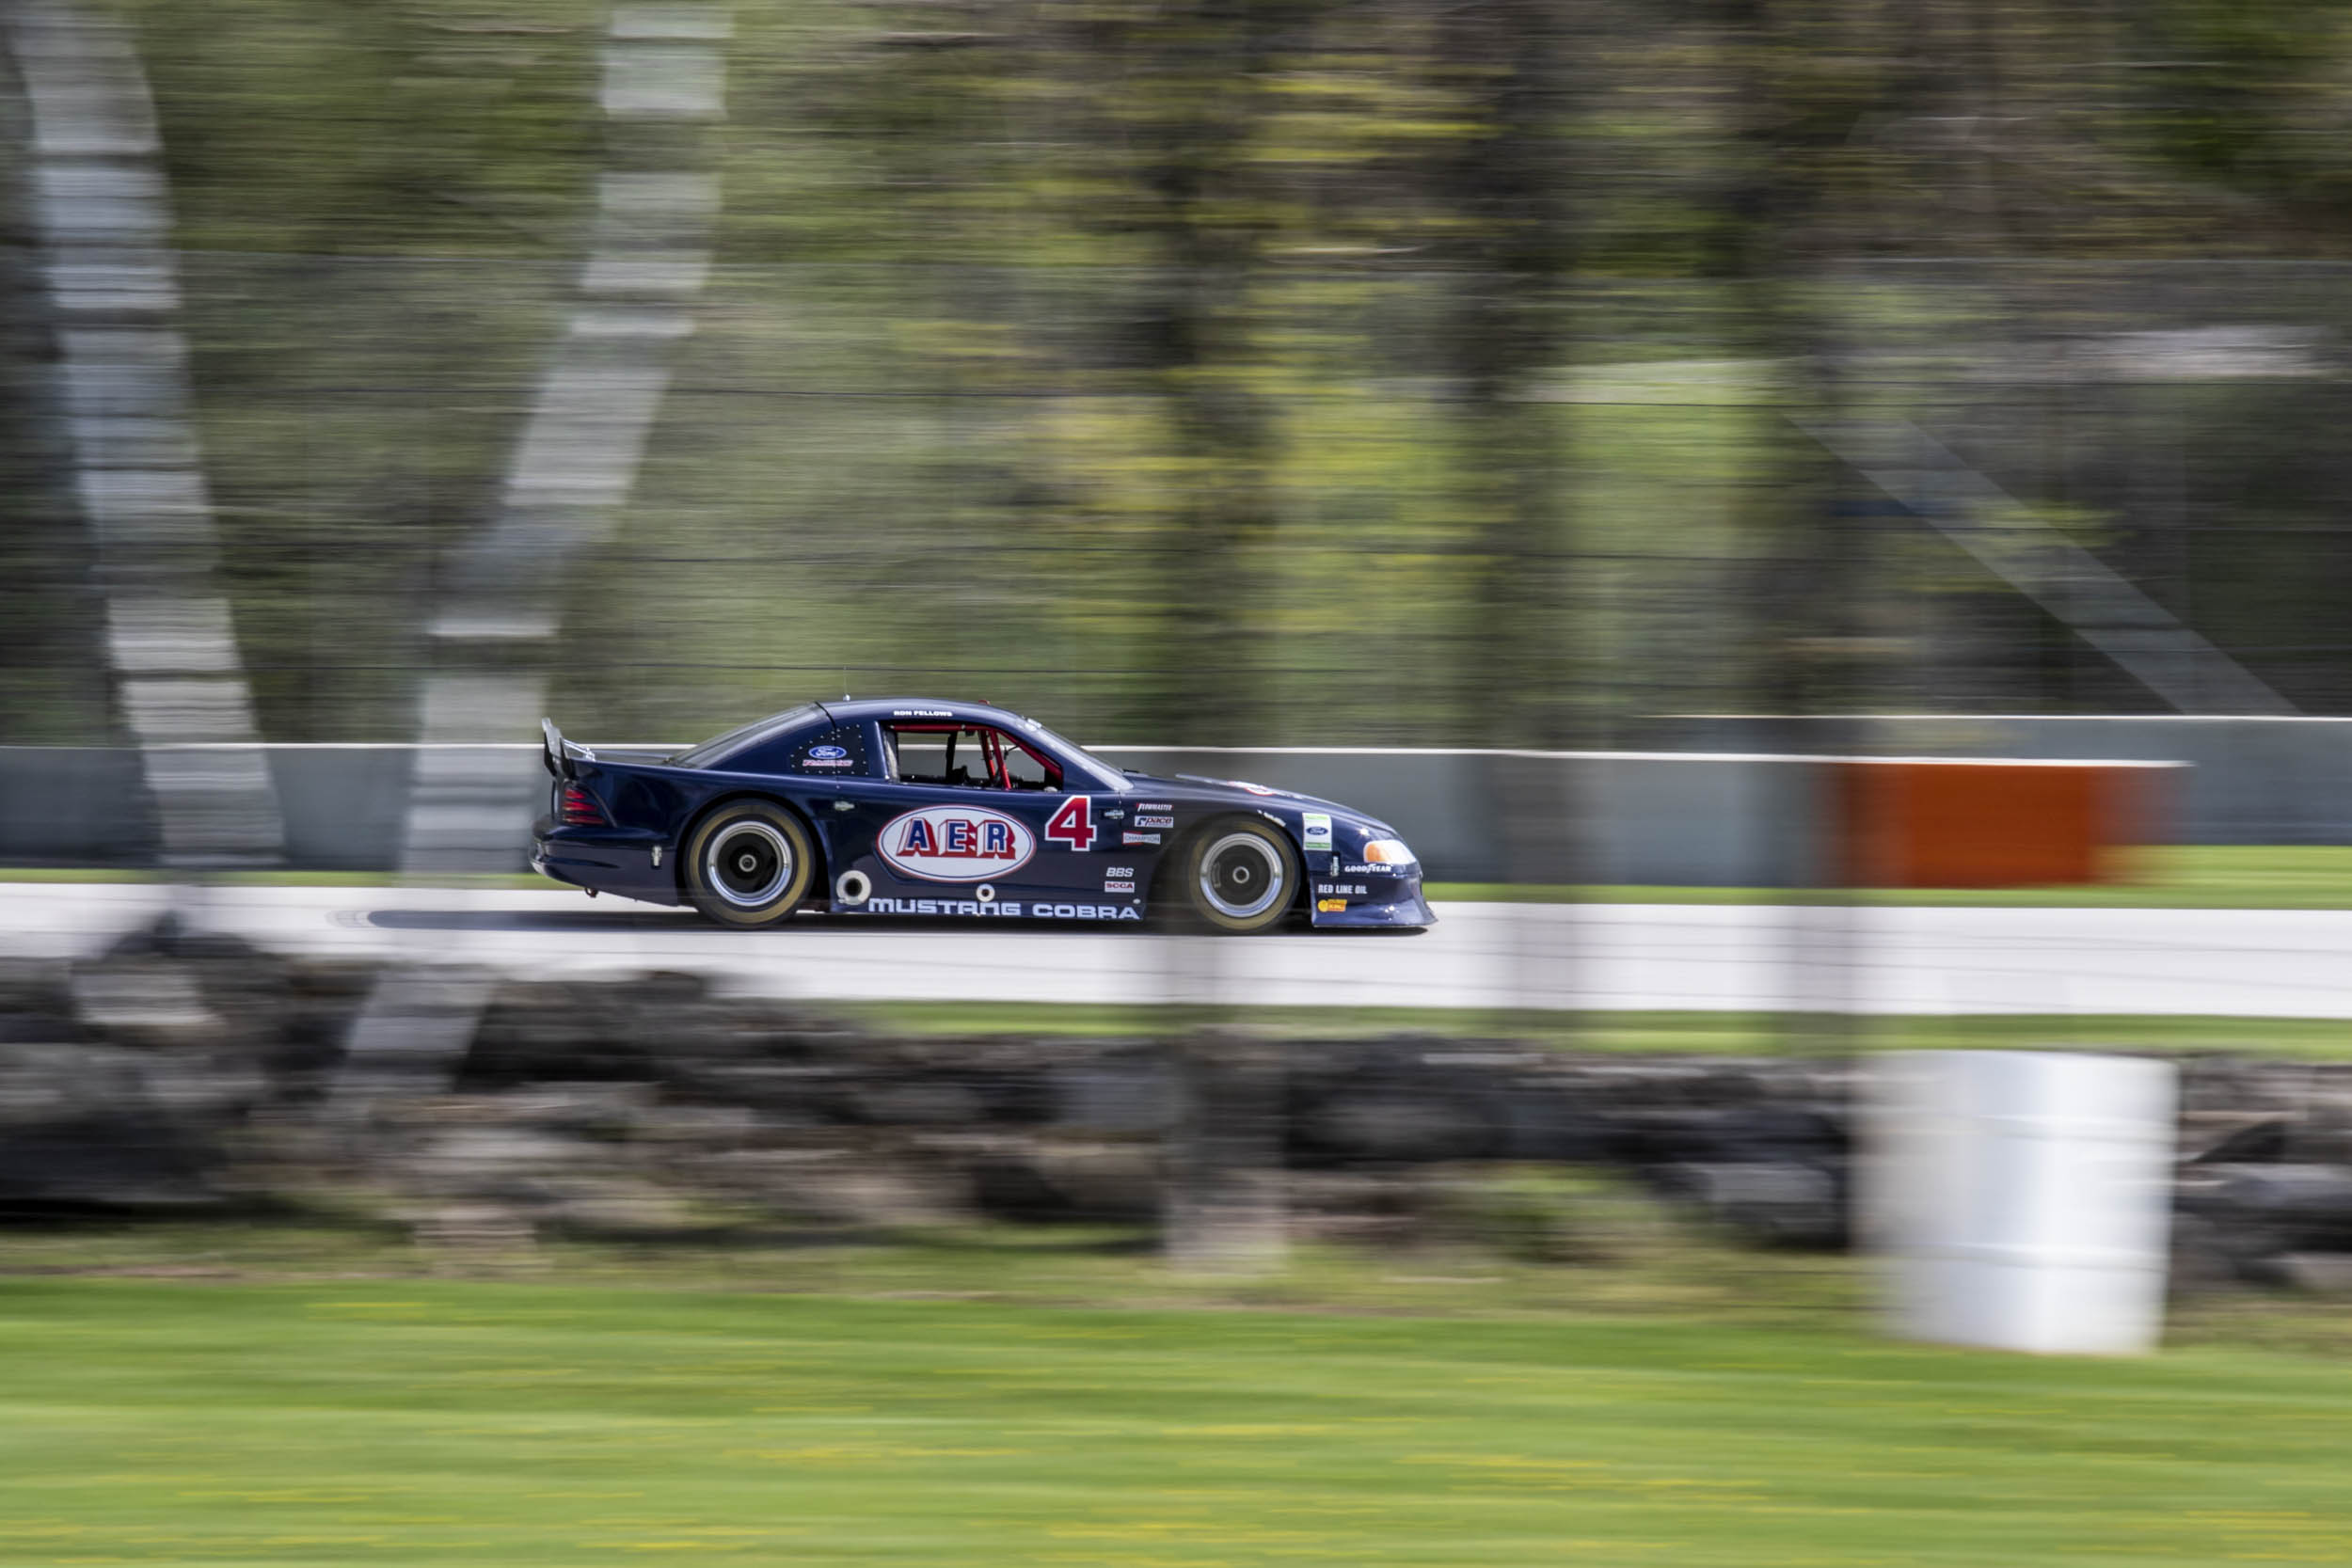 """""""I like seeing if I can get the car to do what I want,"""" says Bud Bennett, about the challenge of driving an 800-hp, purpose- built race car."""